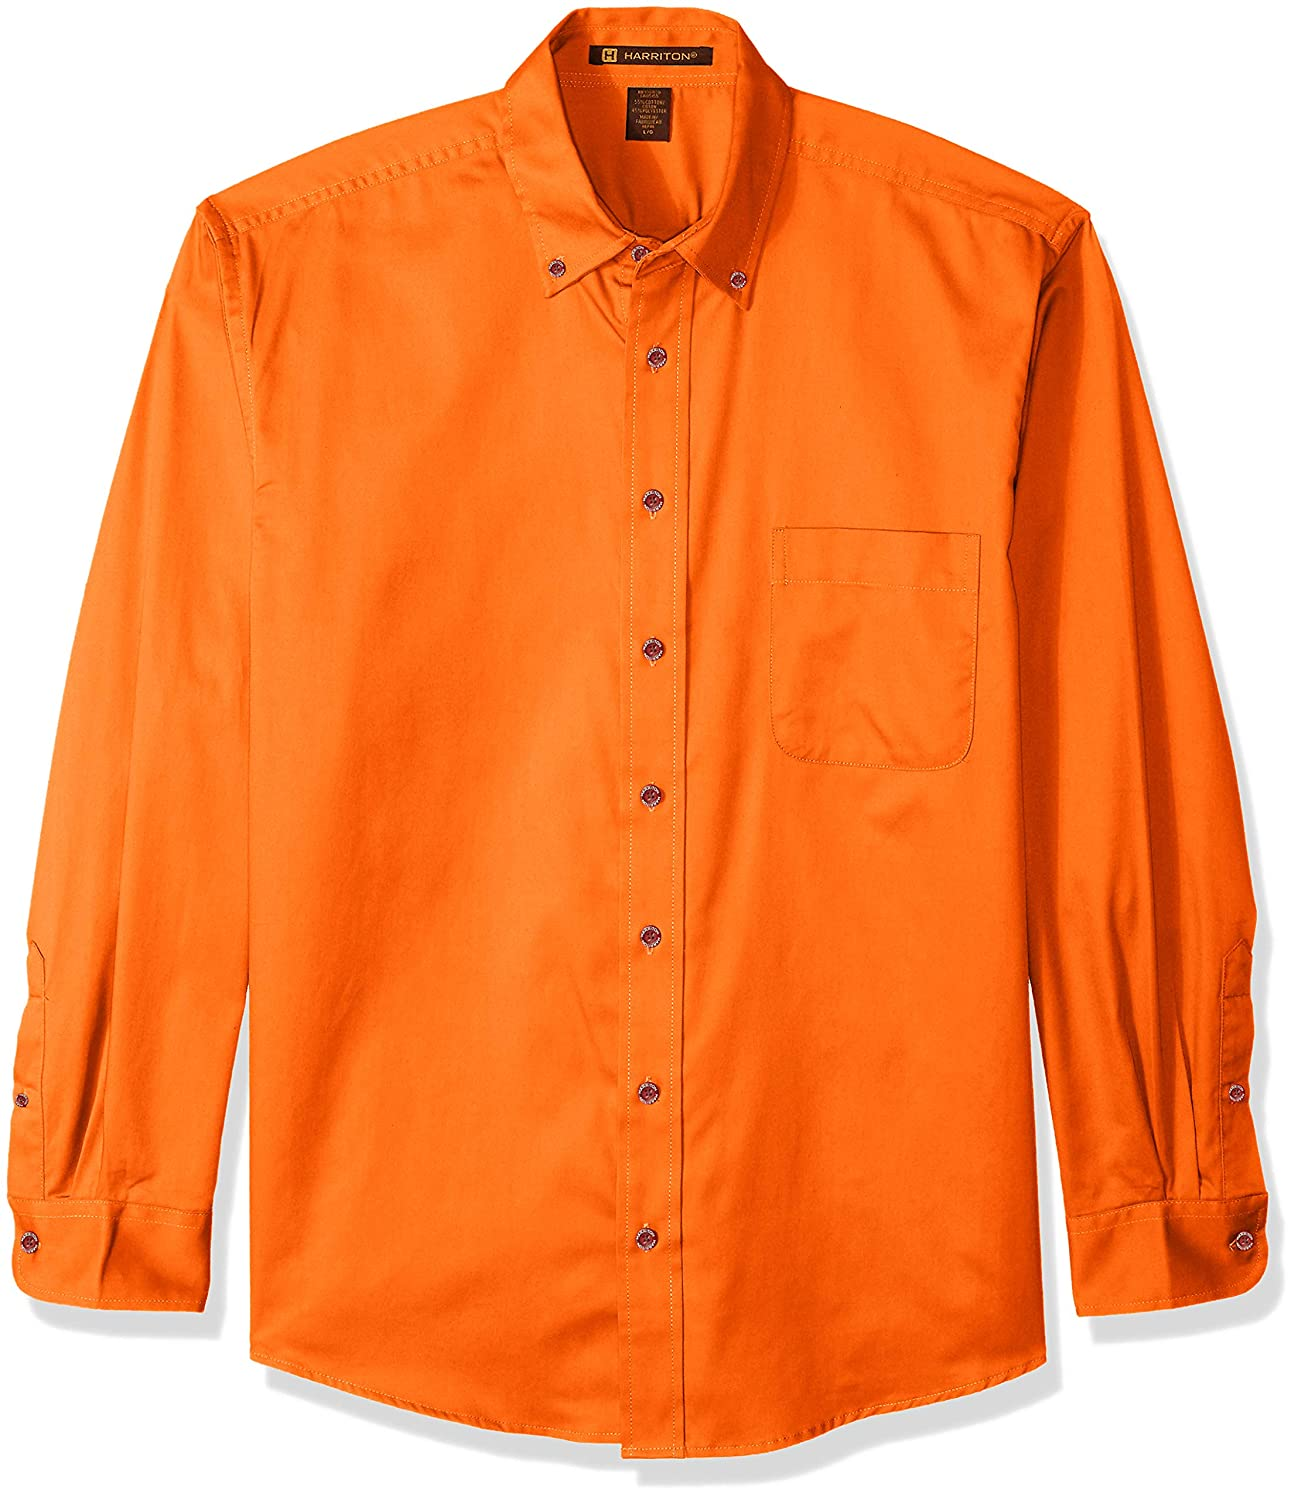 Team Orange 6XL Harritton Mens HART-M500-800-6X-Large